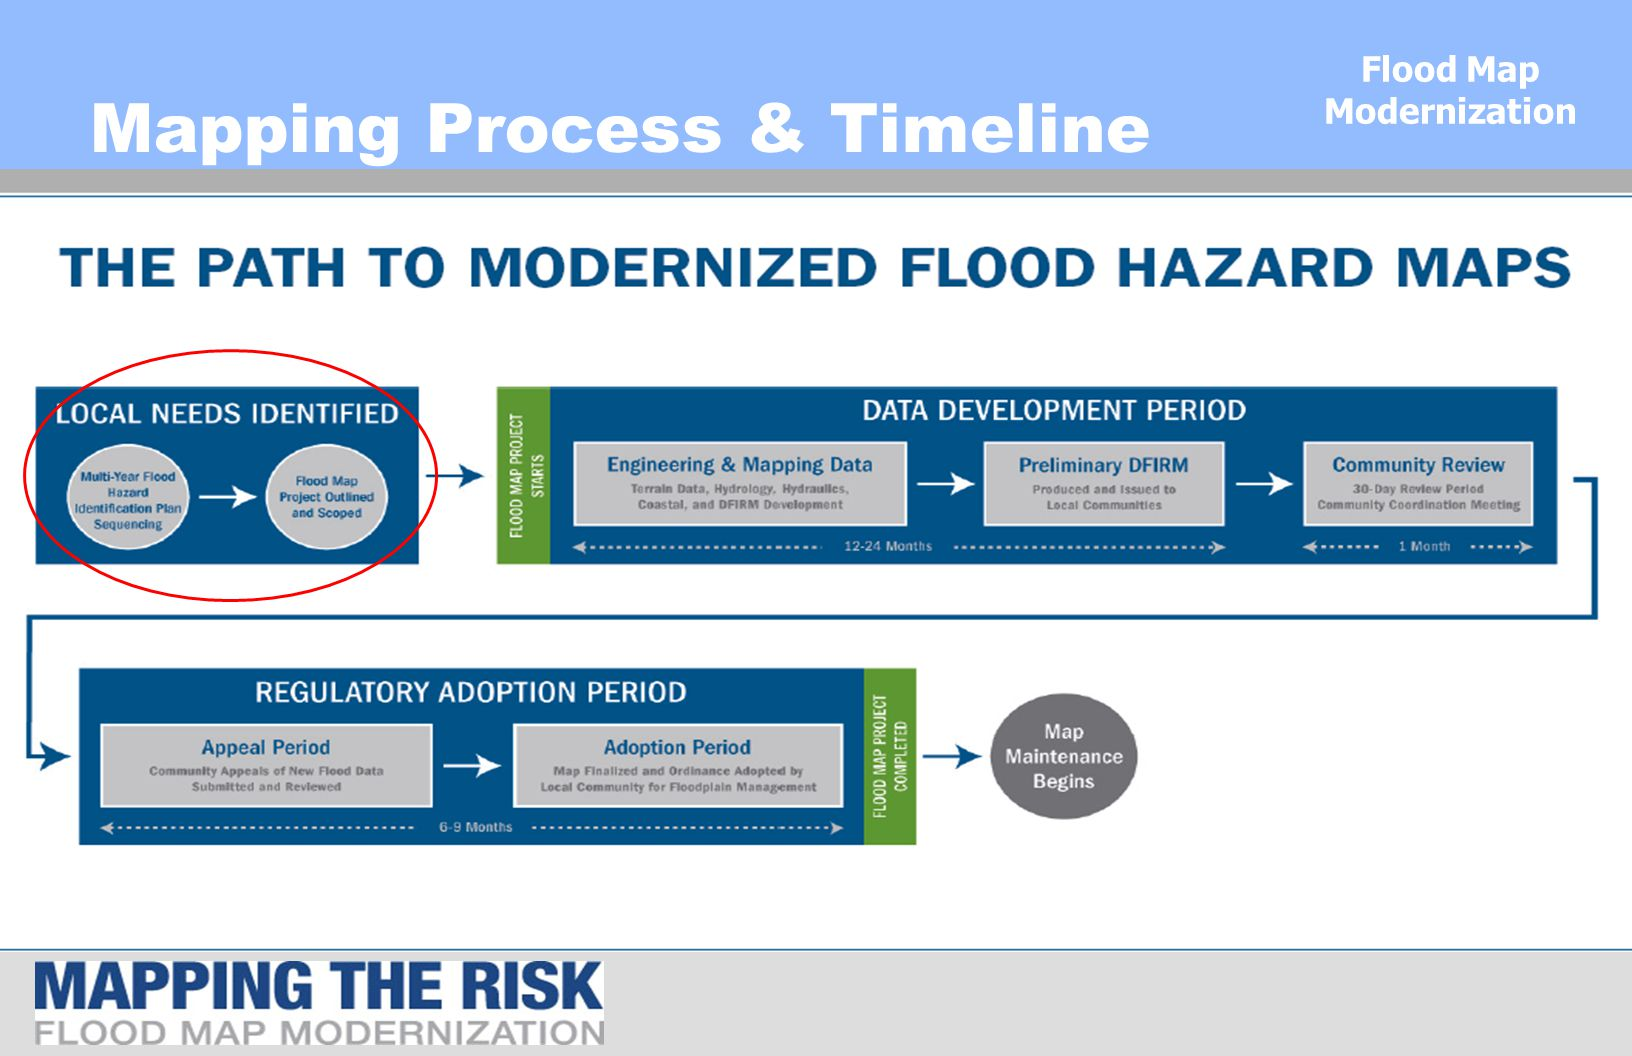 Flood Map Modernization Mapping Process & Timeline